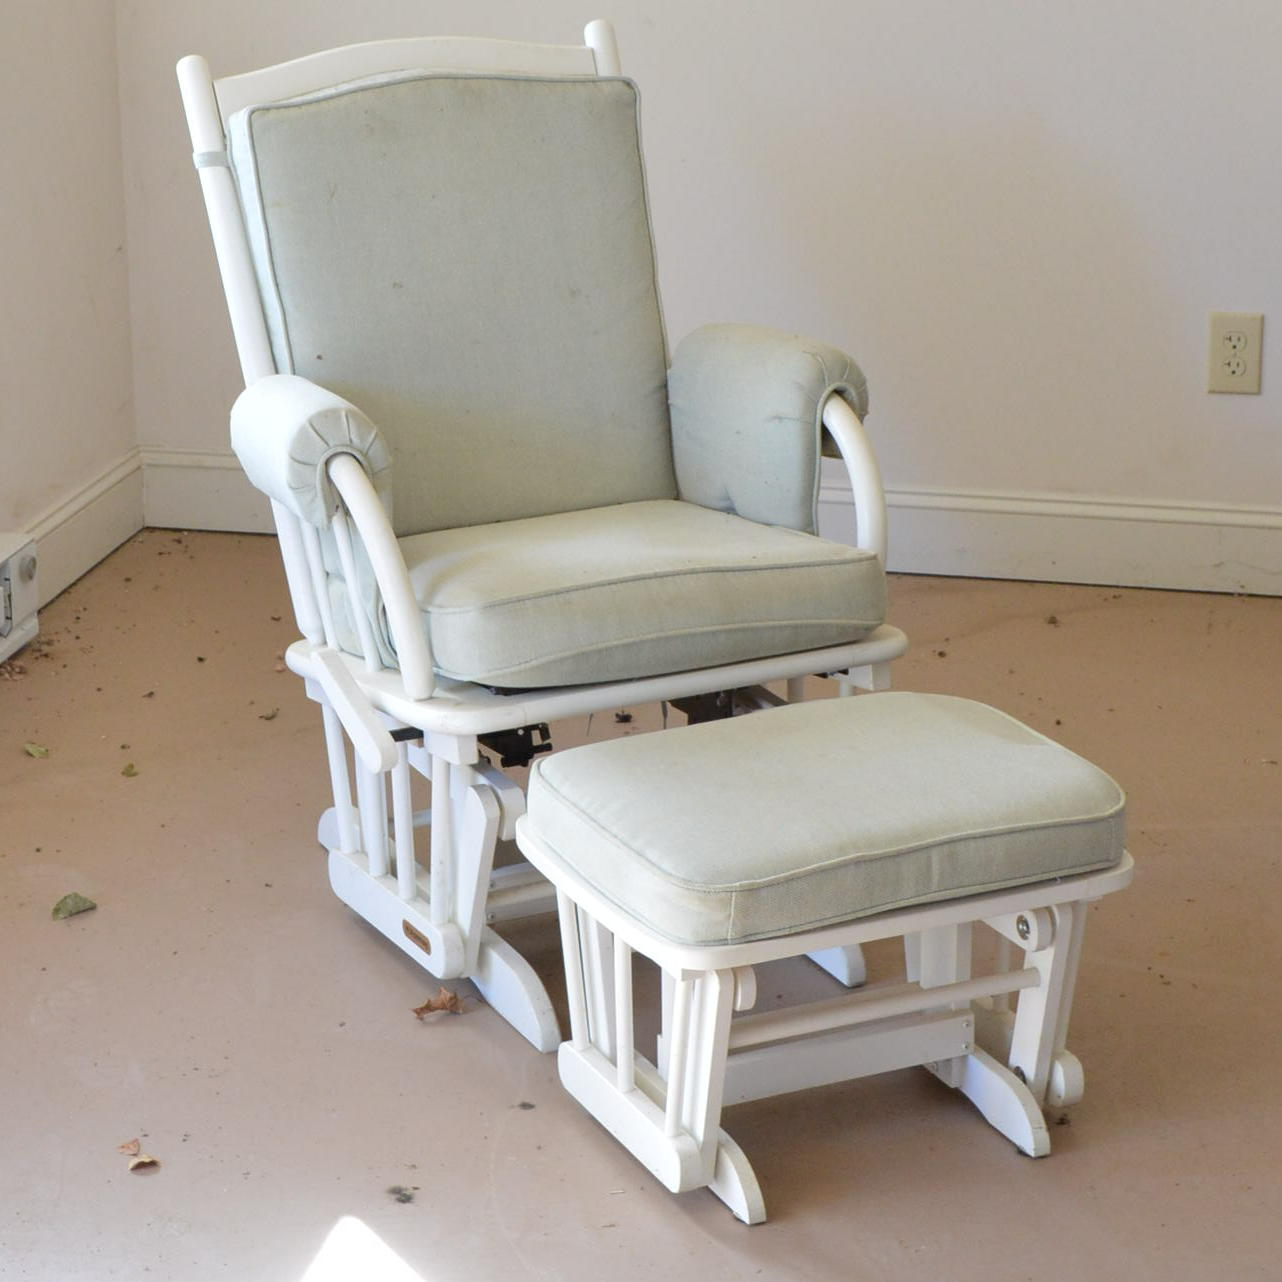 vintage nursery furniture. Wooden Glider With Cushions And Ottoman By Shermag Vintage Nursery Furniture I